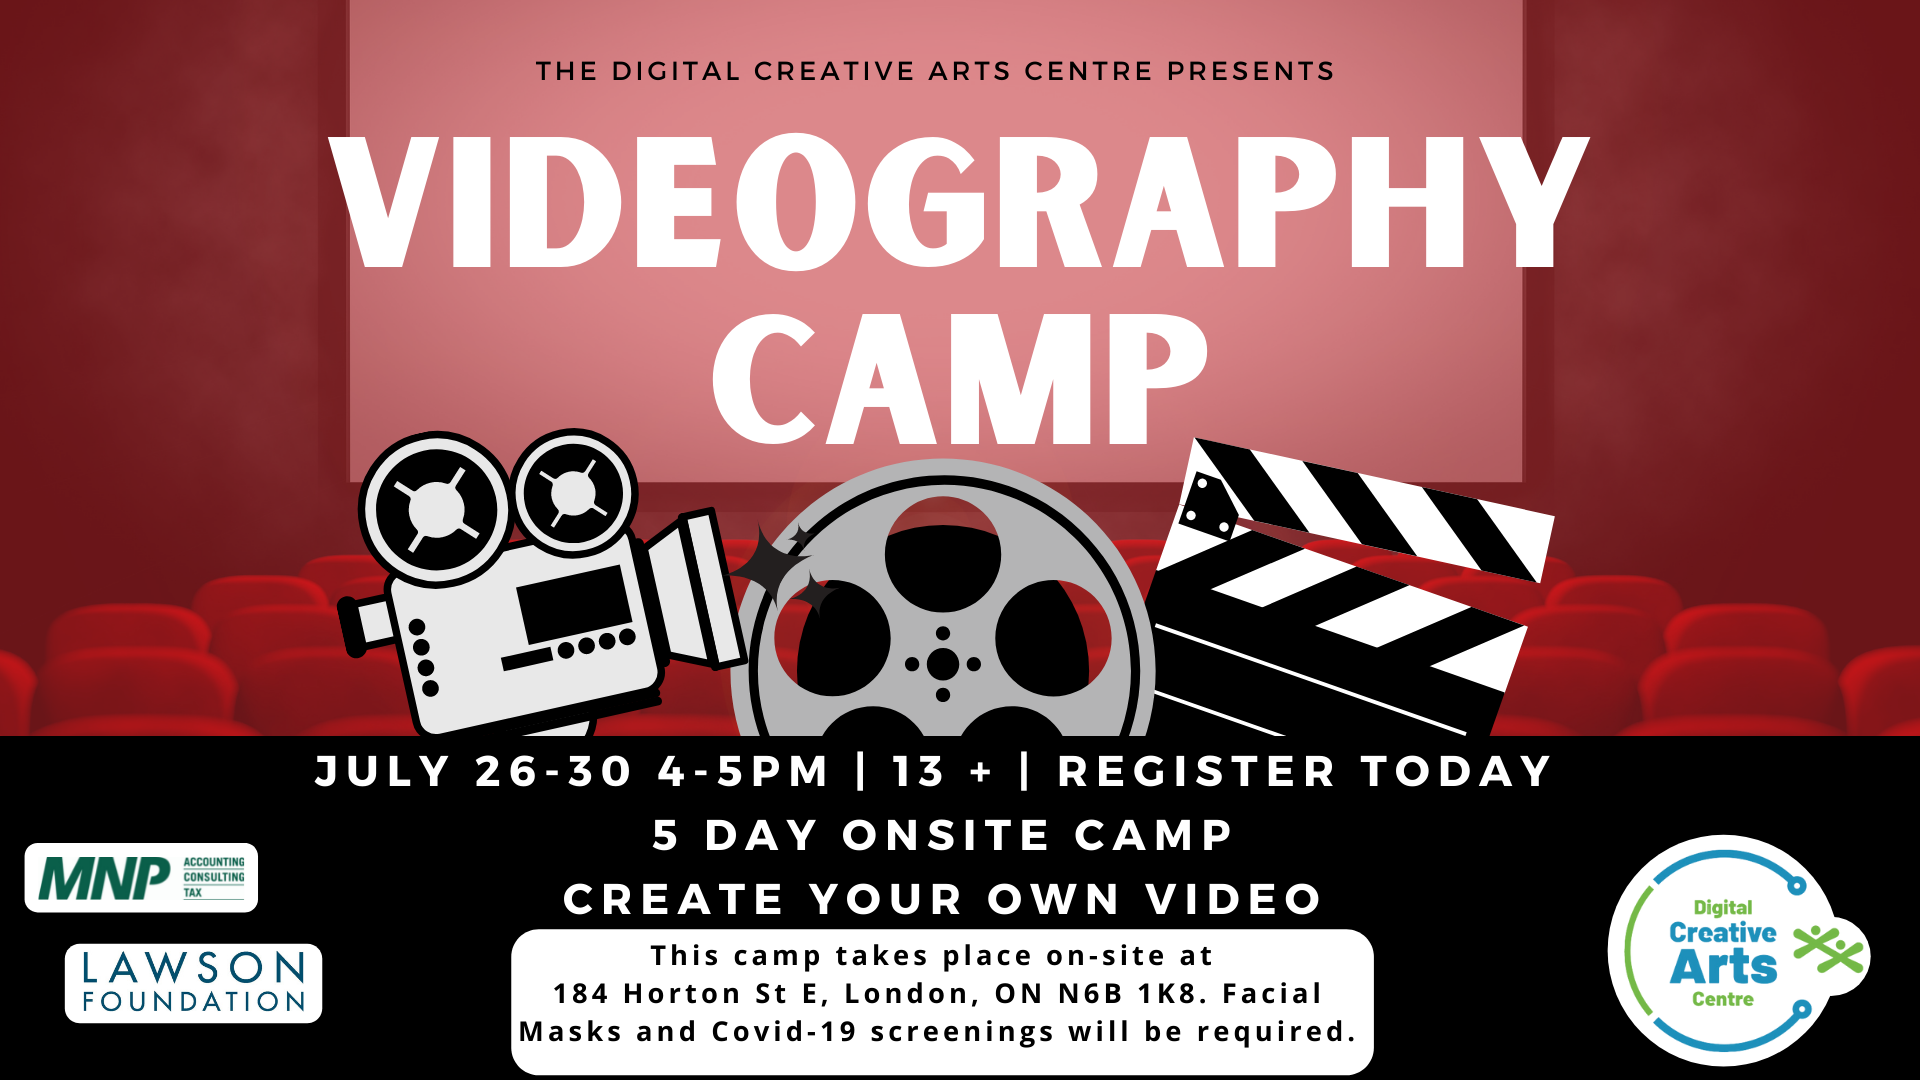 Videography Camp